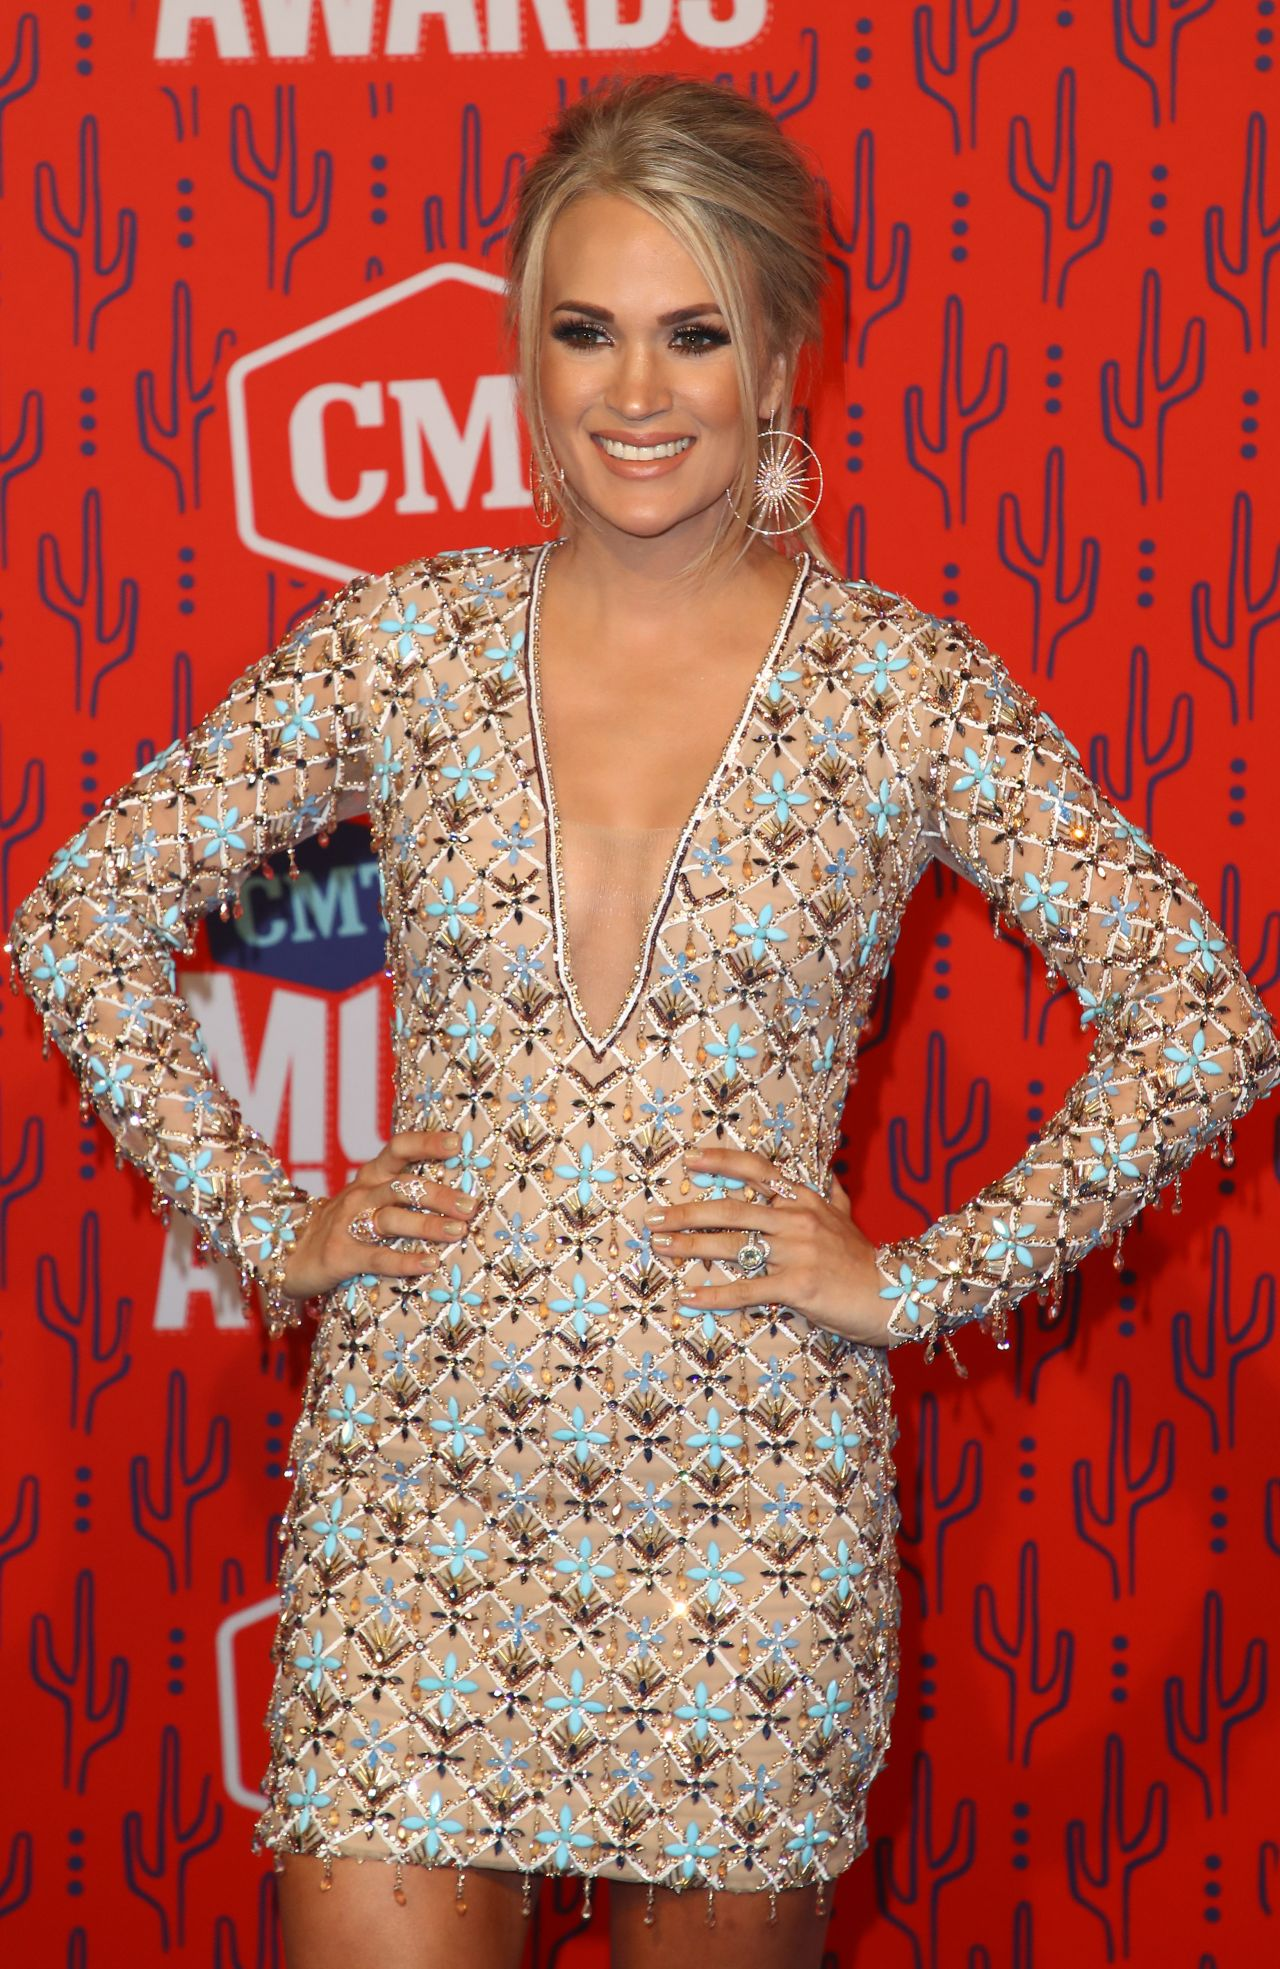 Carrie Underwood 2019 Cmt Music Awards In Nashville